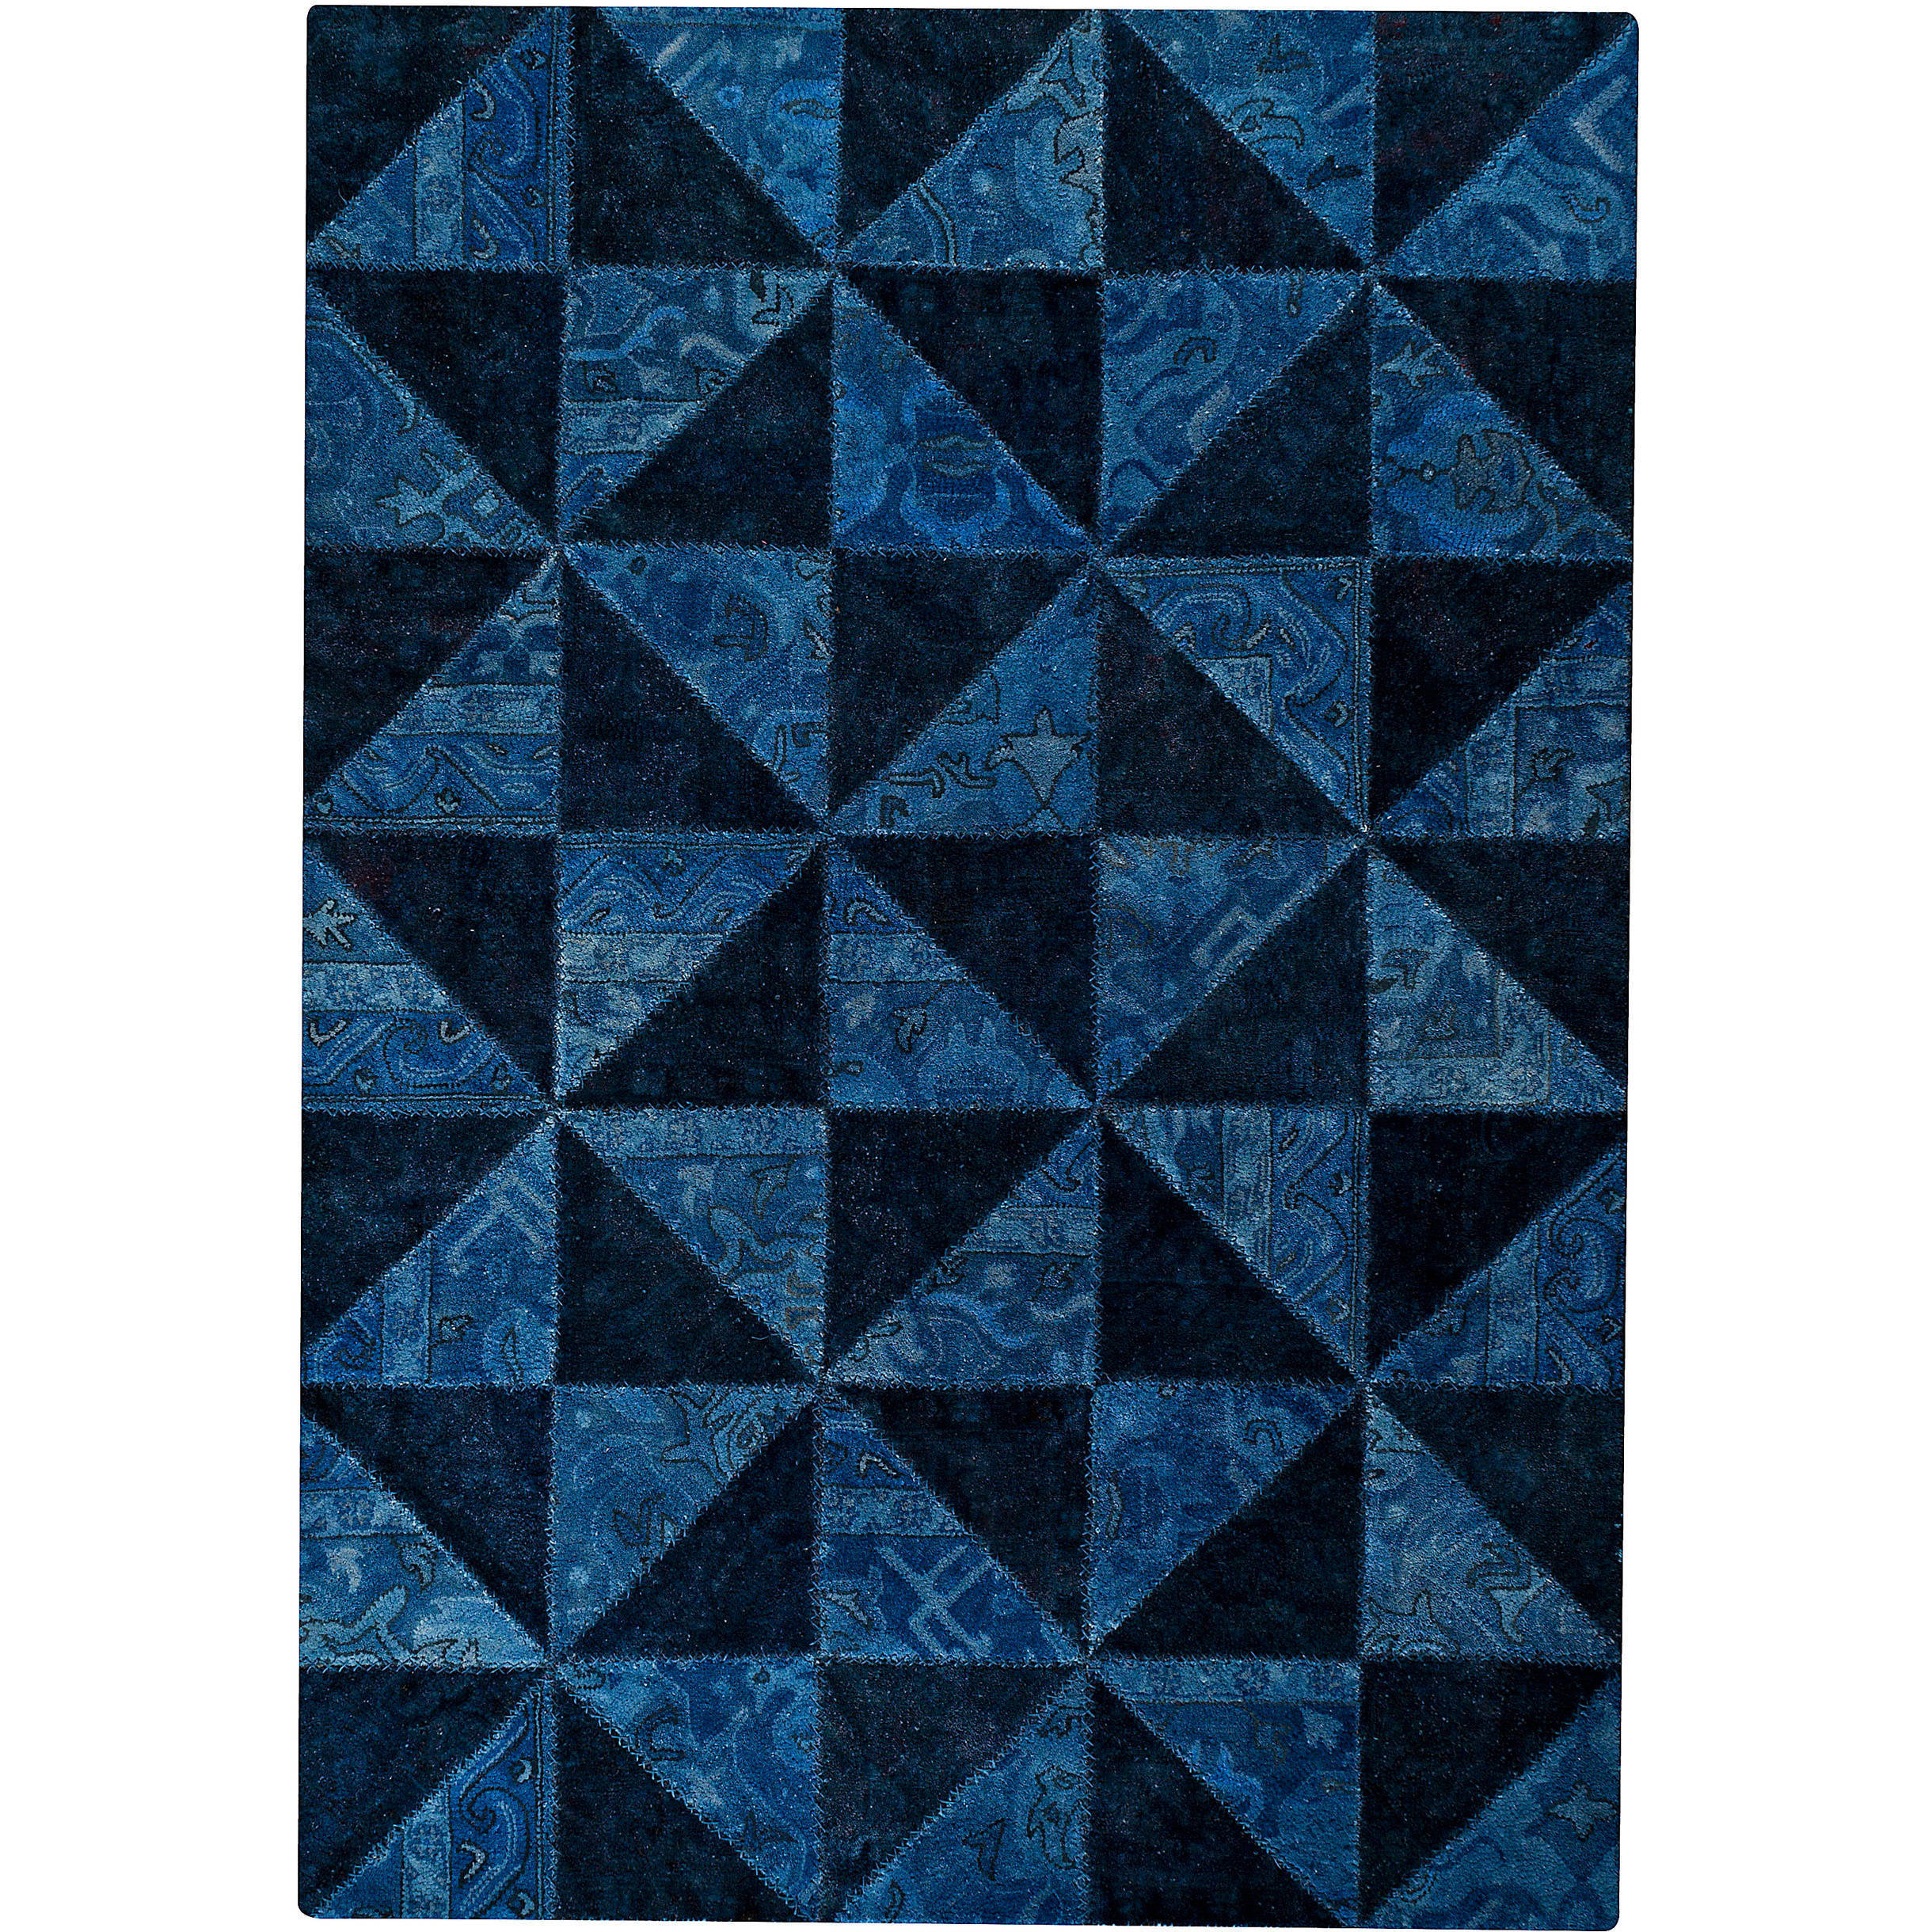 M.A.Trading Hand-tufted Tile Blue/ Turquoise New Zealand ...